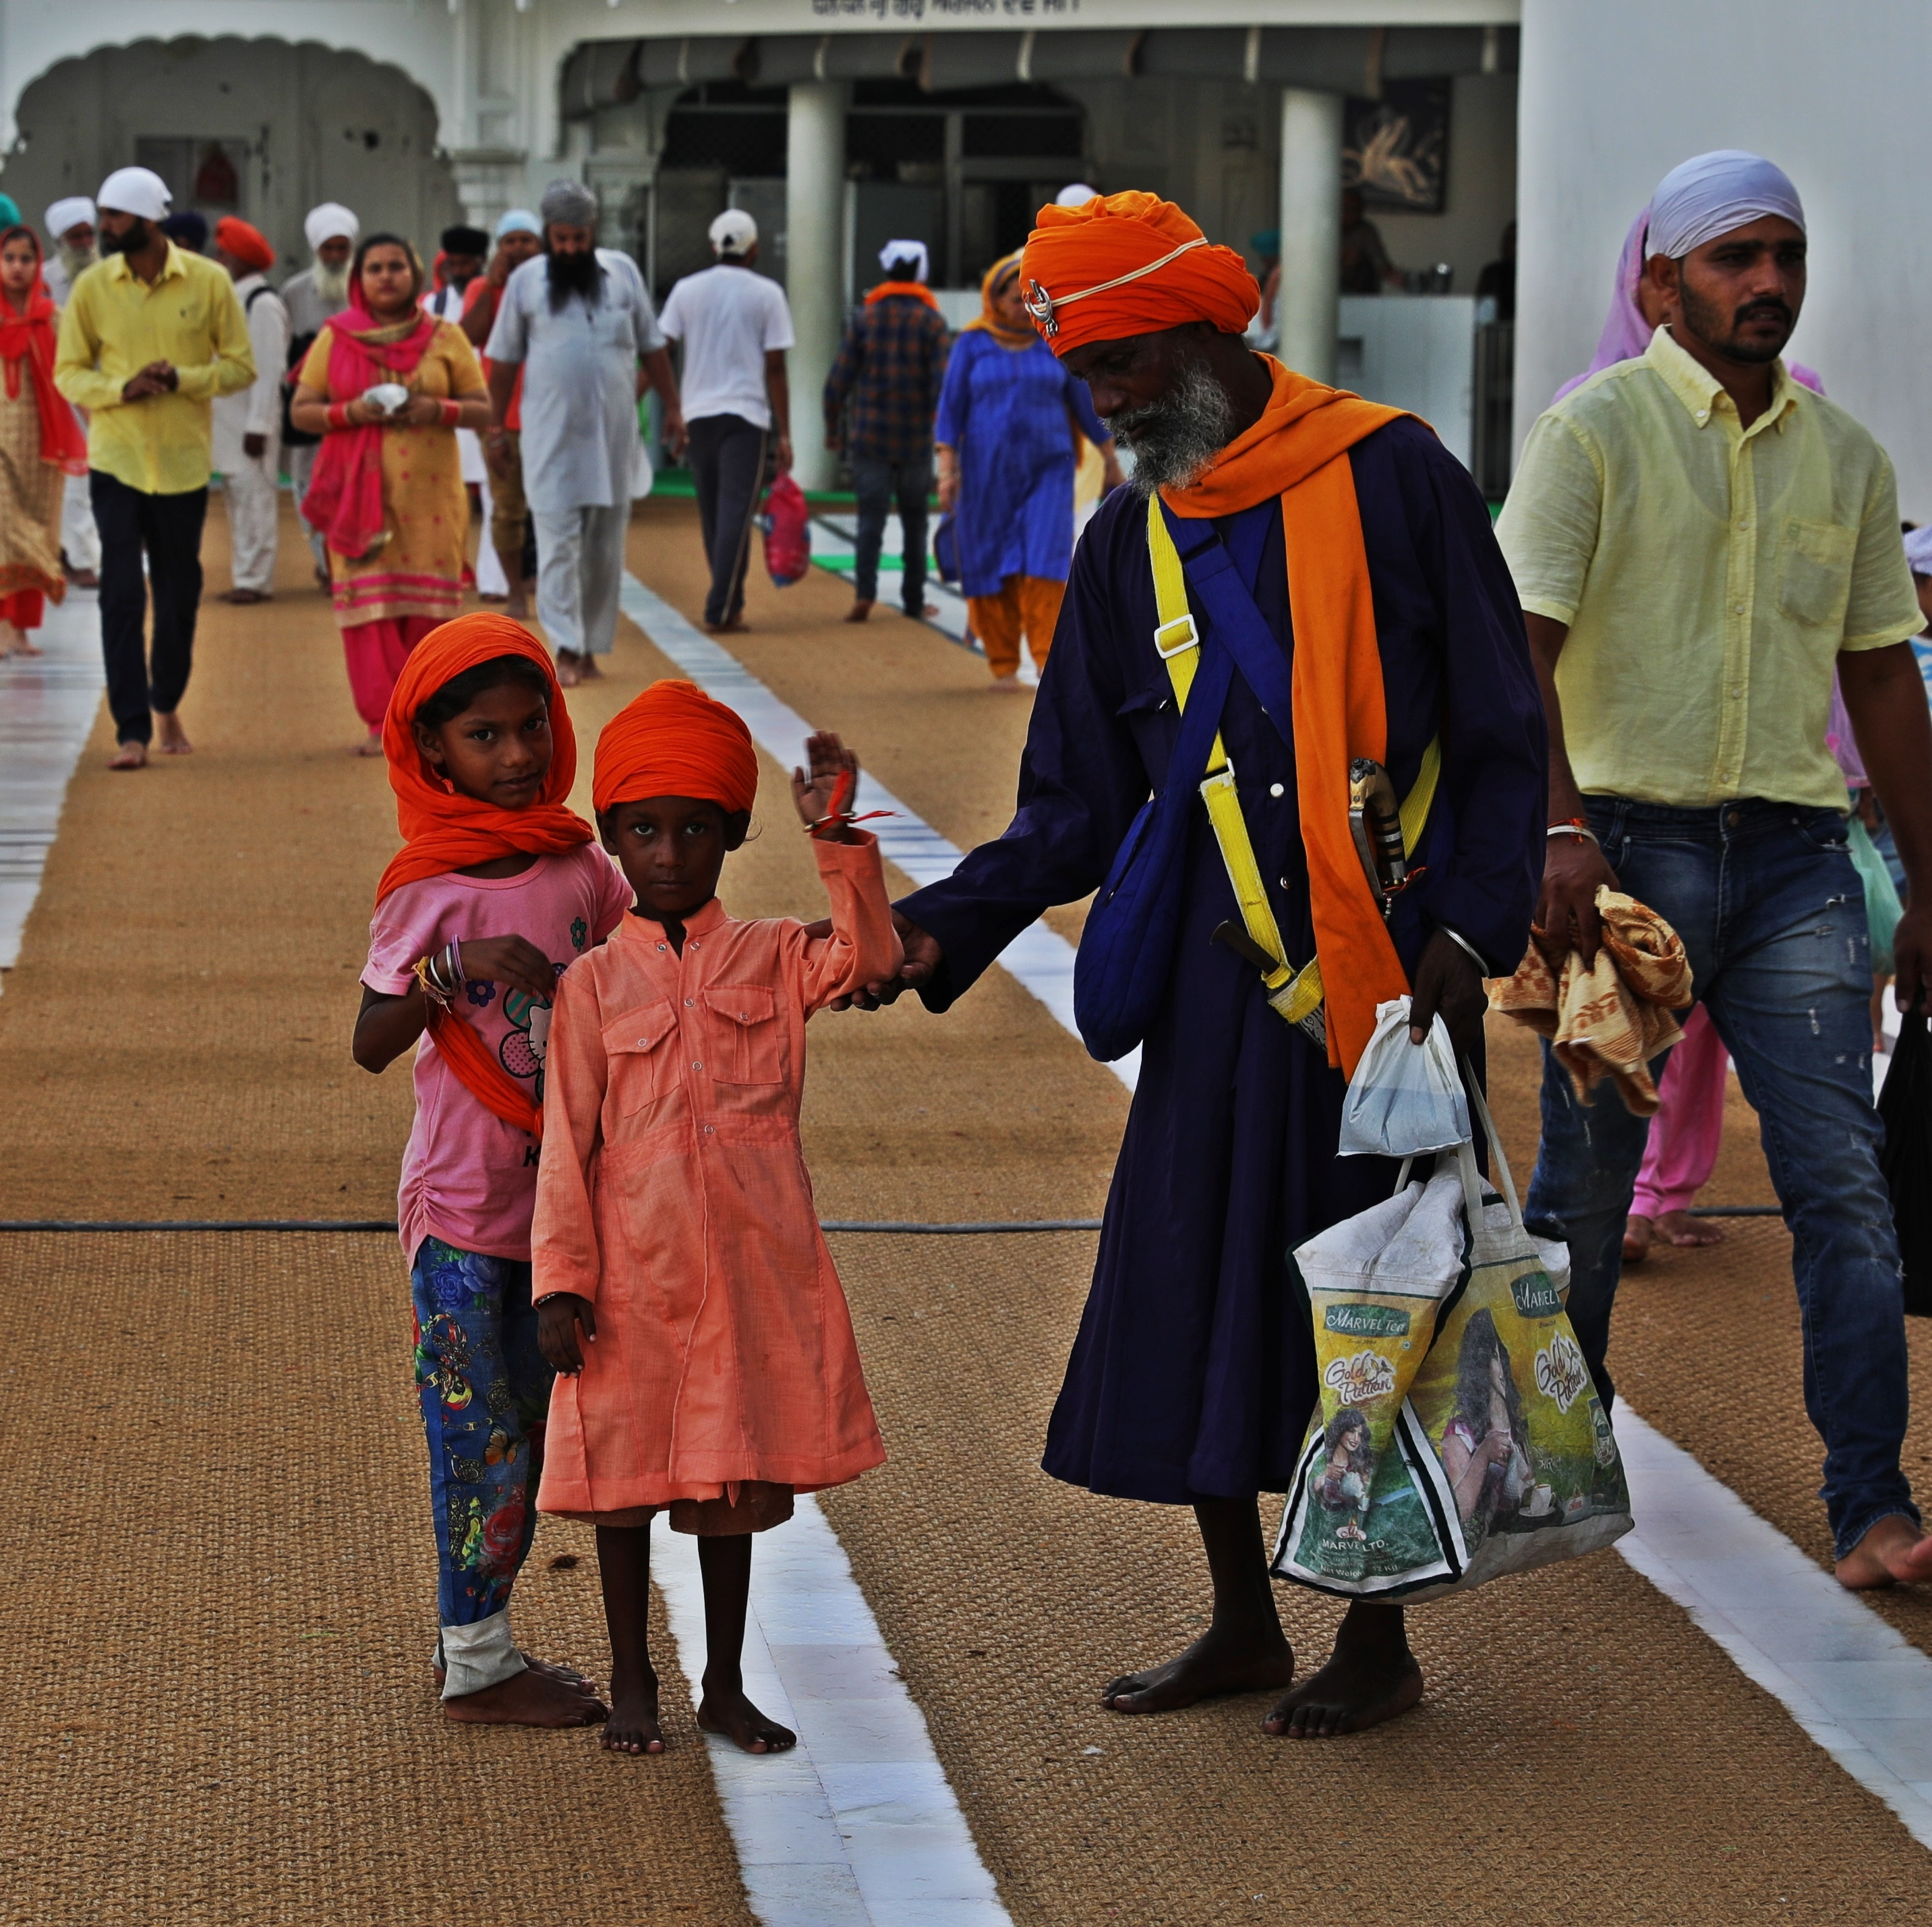 Family at the Golden Temple, Amritsar